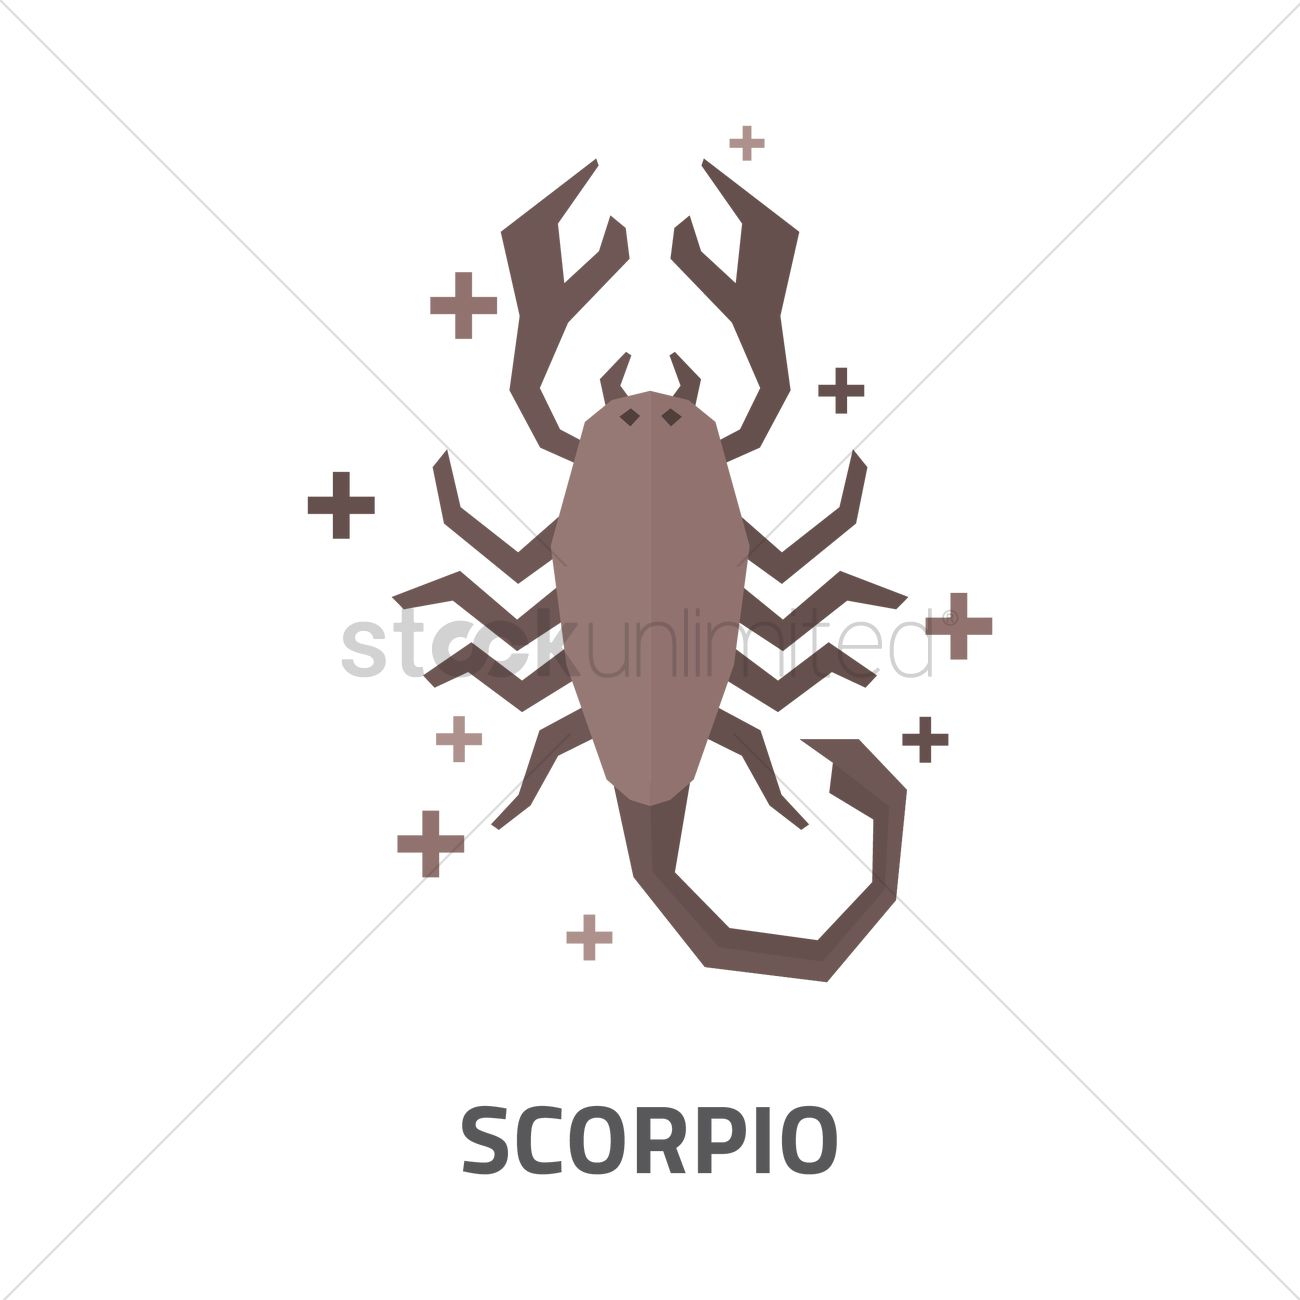 Scorpio horoscope design Vector Image - 1969144 | StockUnlimited